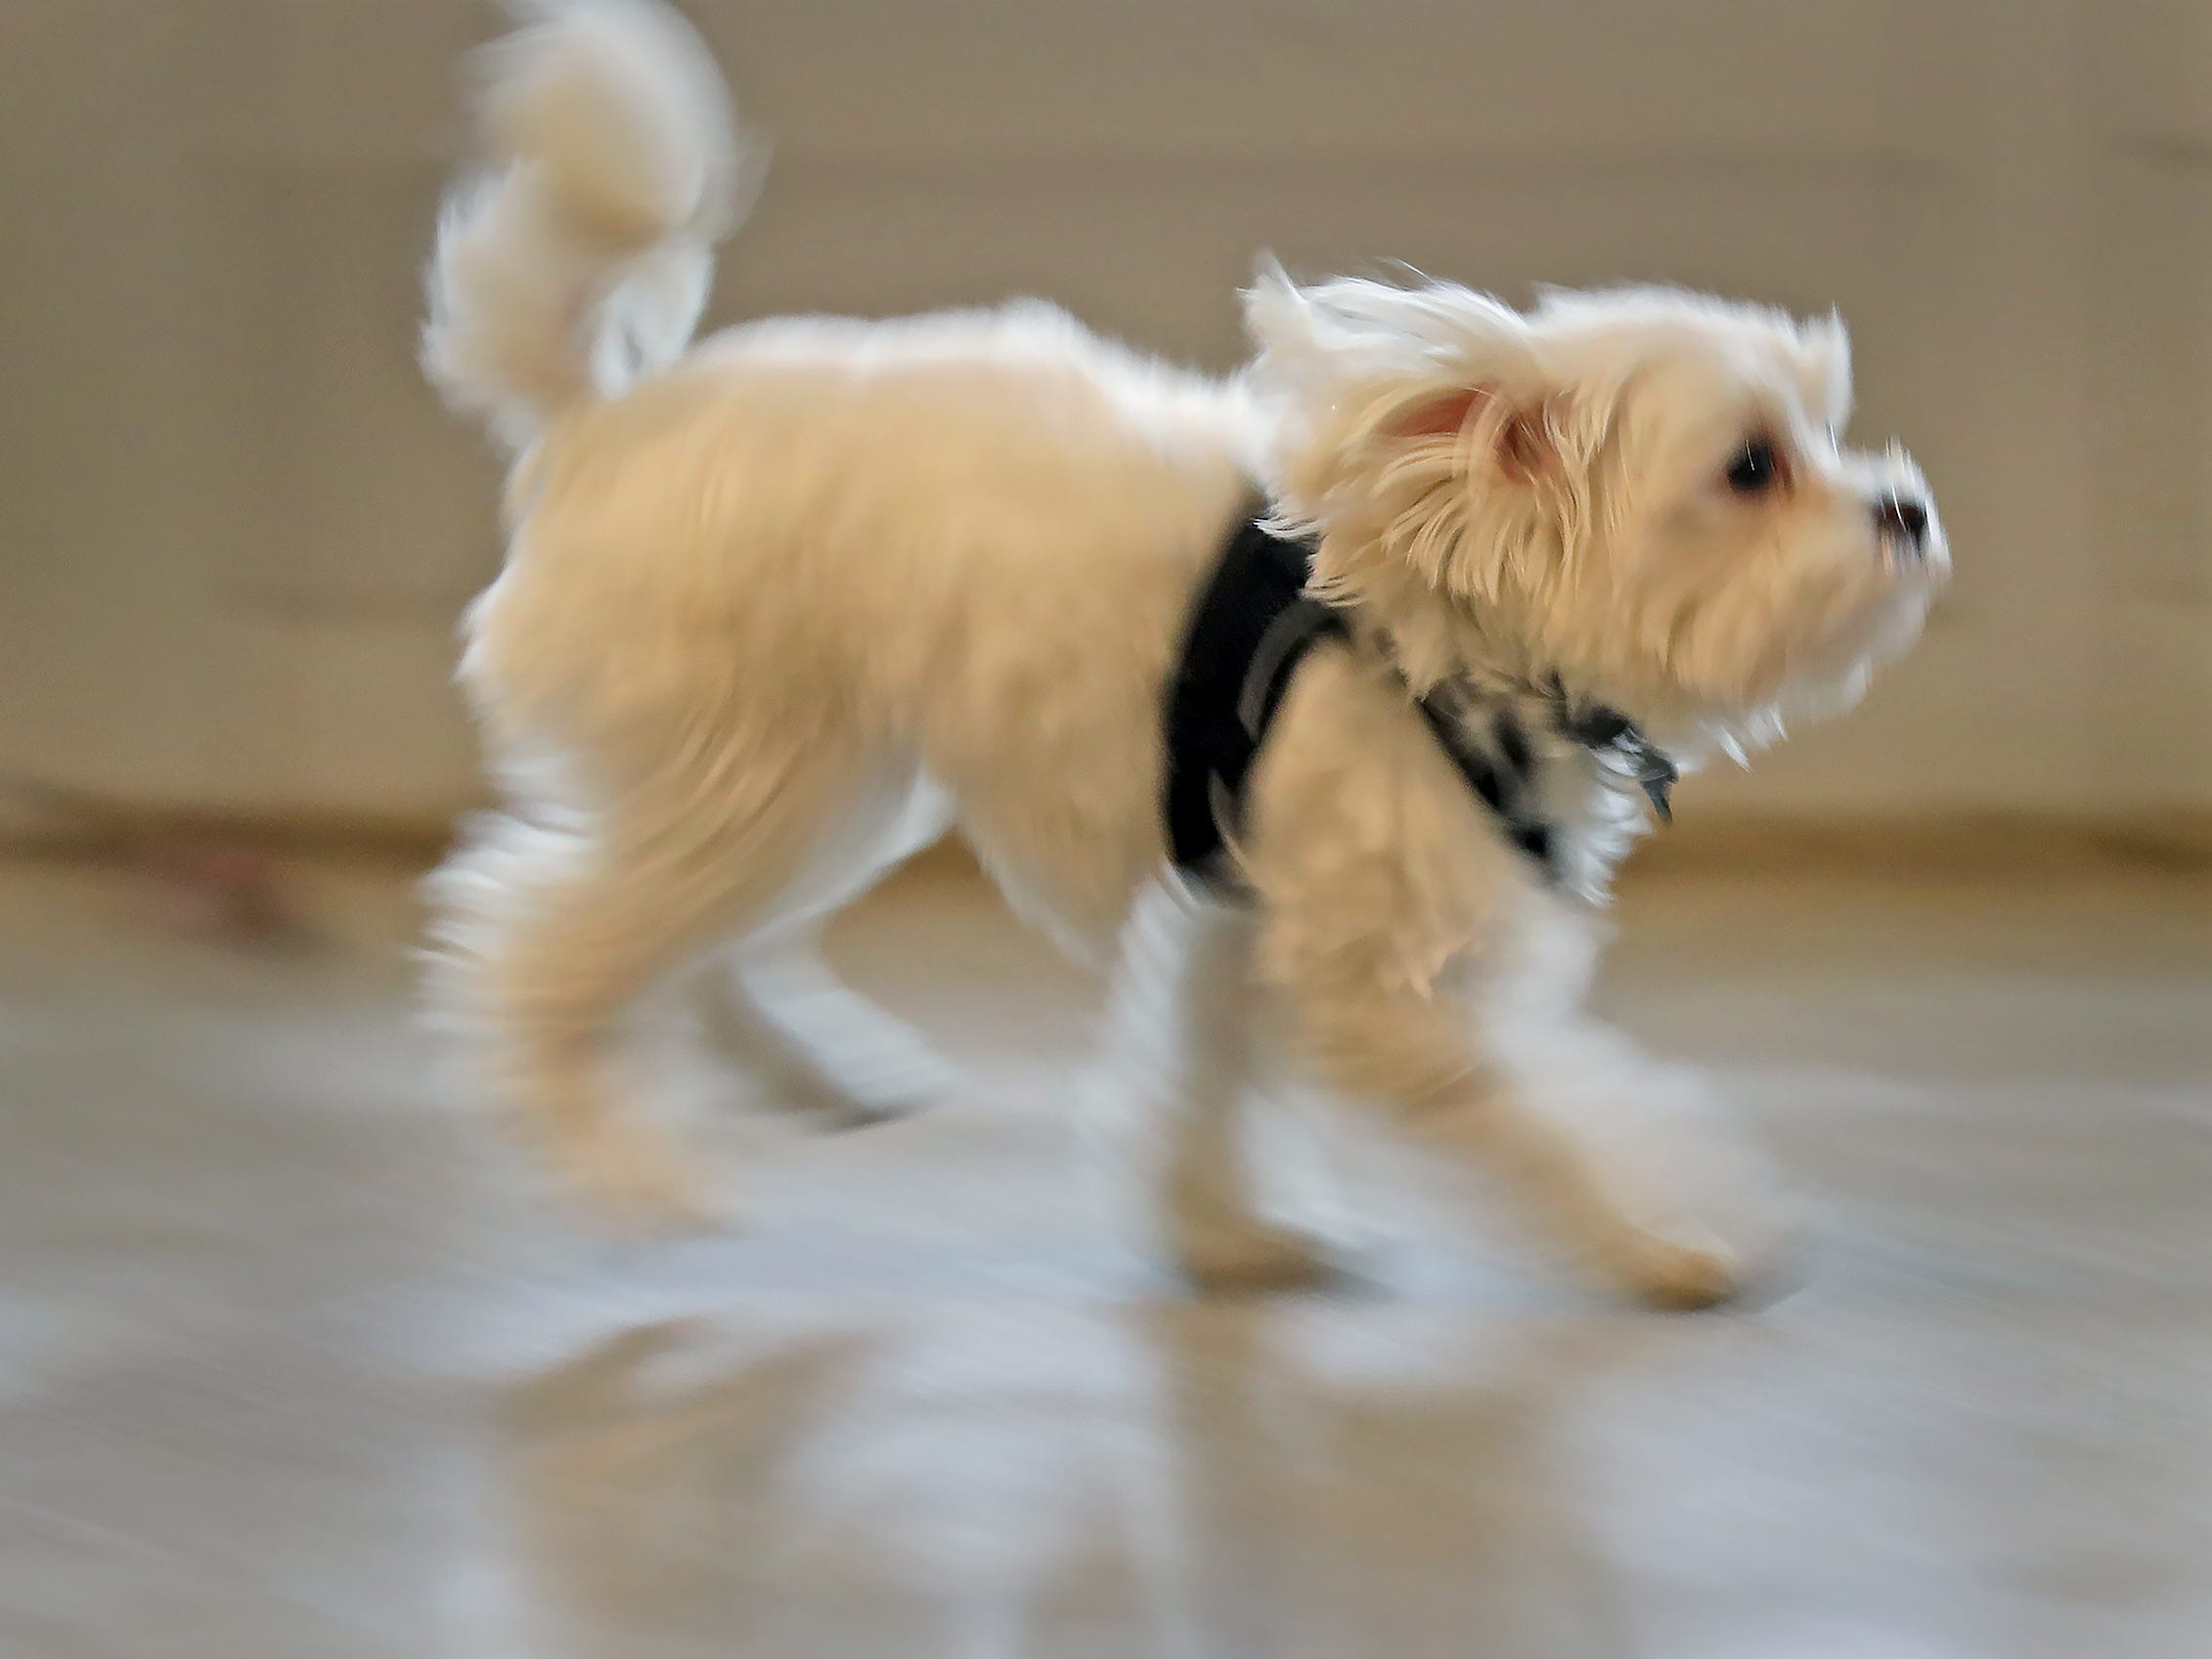 Pistachio, a Maltese-mix puppy, who is the 2019 Puppy Bowl's tiniest player, skips around as he plays during his visit to the Indianapolis Motor Speedway, Wednesday, Jan. 9, 2019.